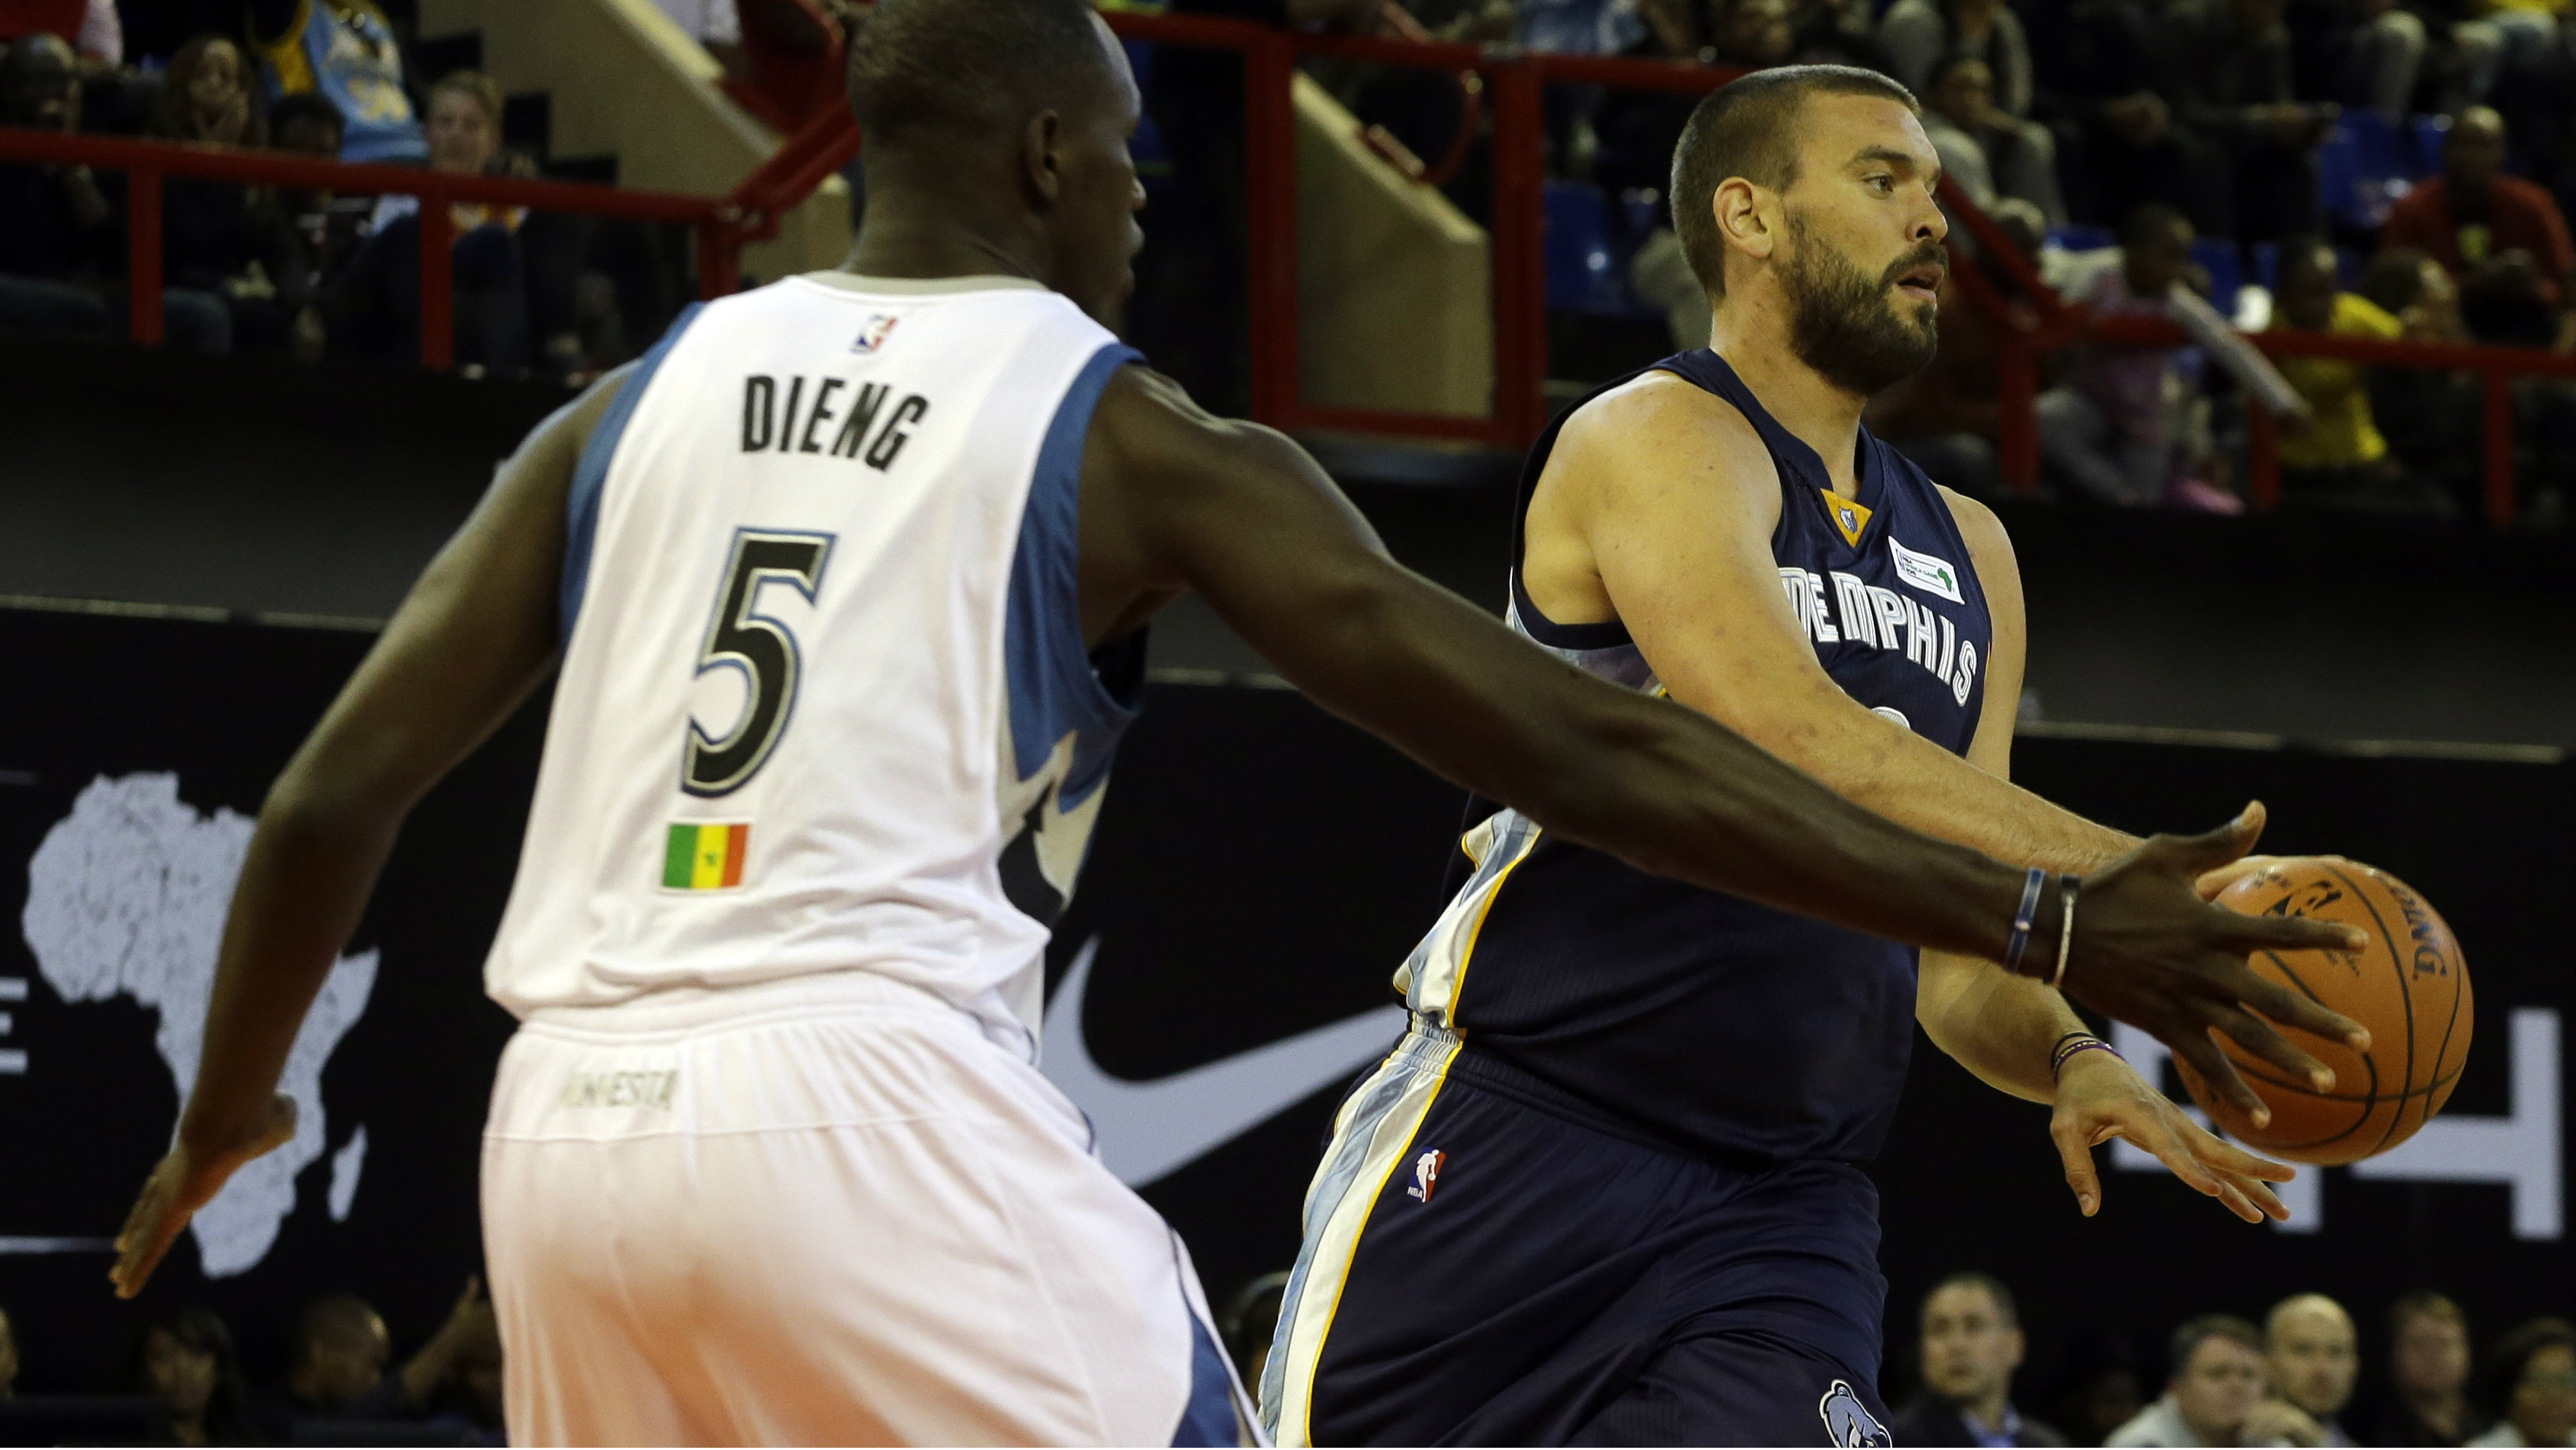 Team World's Marc Gasol of Memphis Grizzlies, right, passes the ball as Team Africa's Luol Deng of Miami Heat defends during the NBA Africa Game at Ellis Park Arena in Johannesburg, South Africa, Saturday, Aug. 1, 2015.